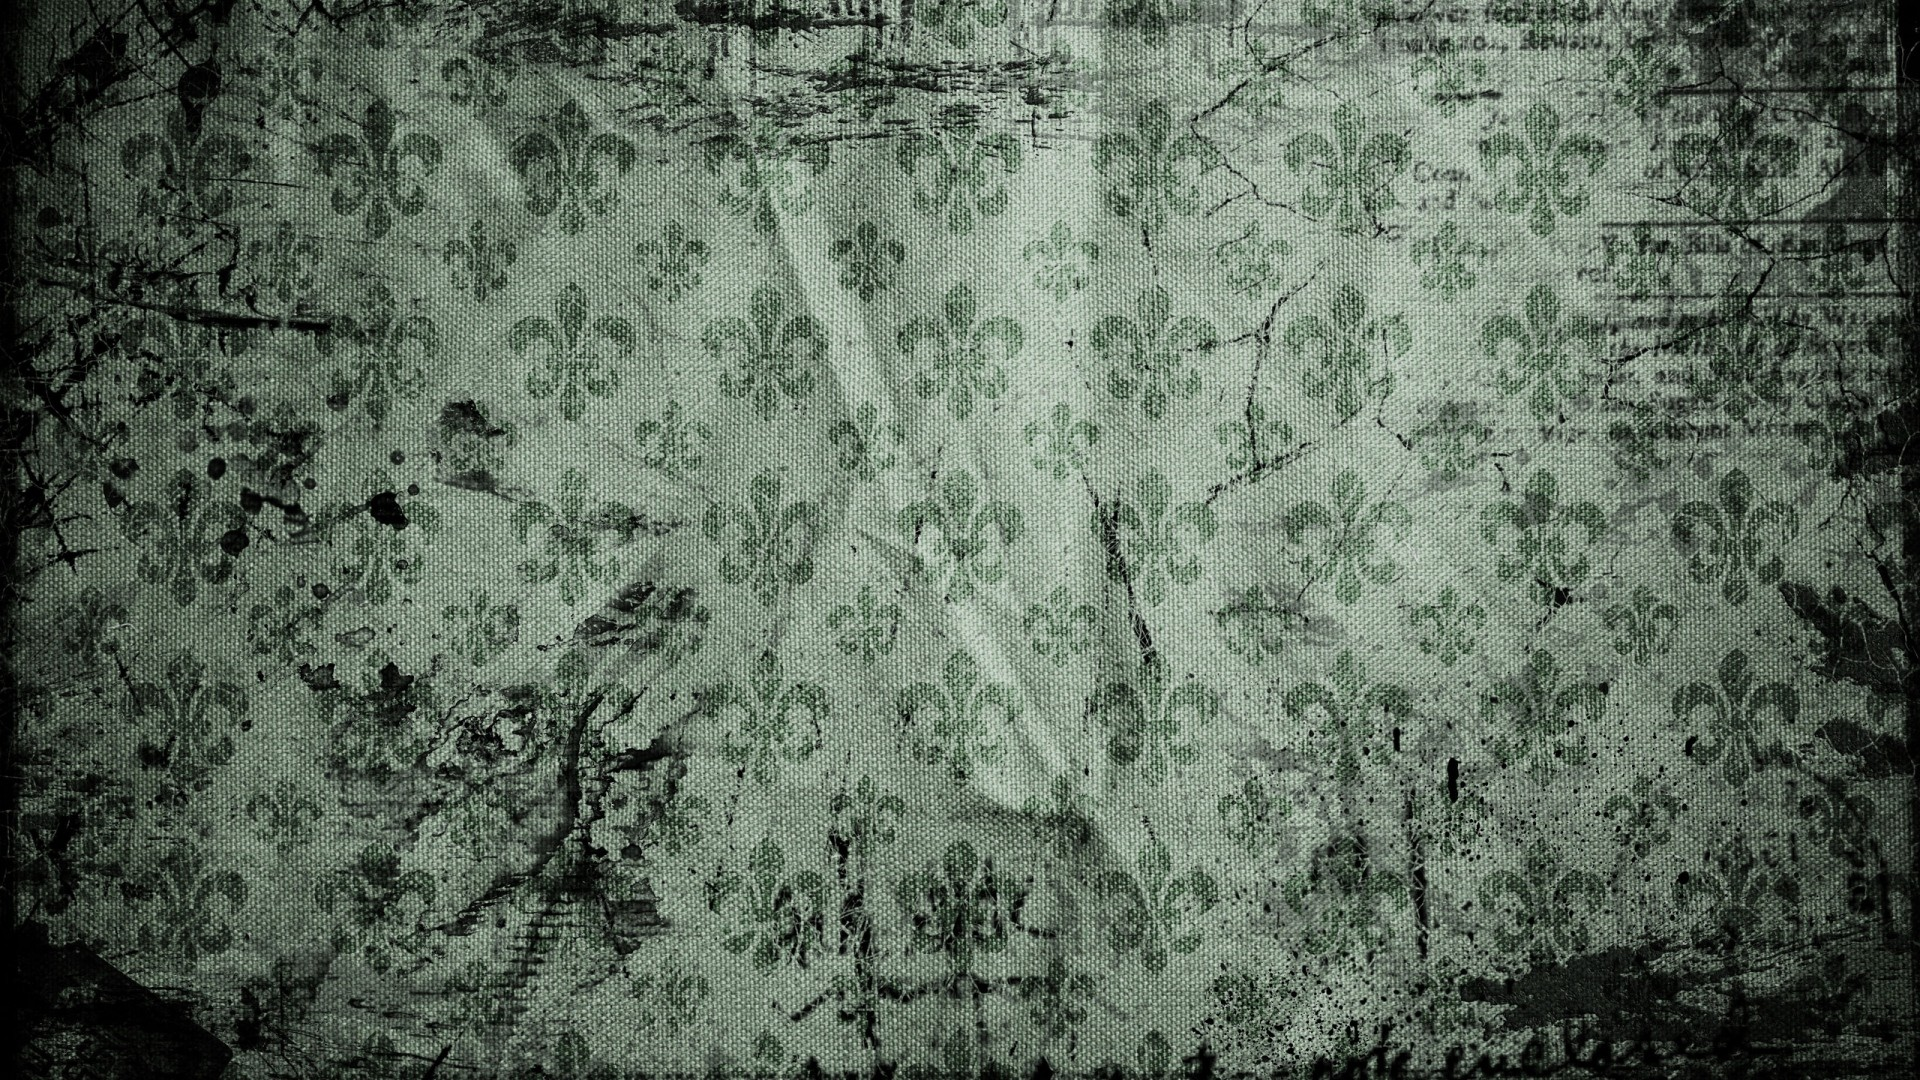 19 Tumblr Grunge Backgrounds 183 '� Download Free Cool High